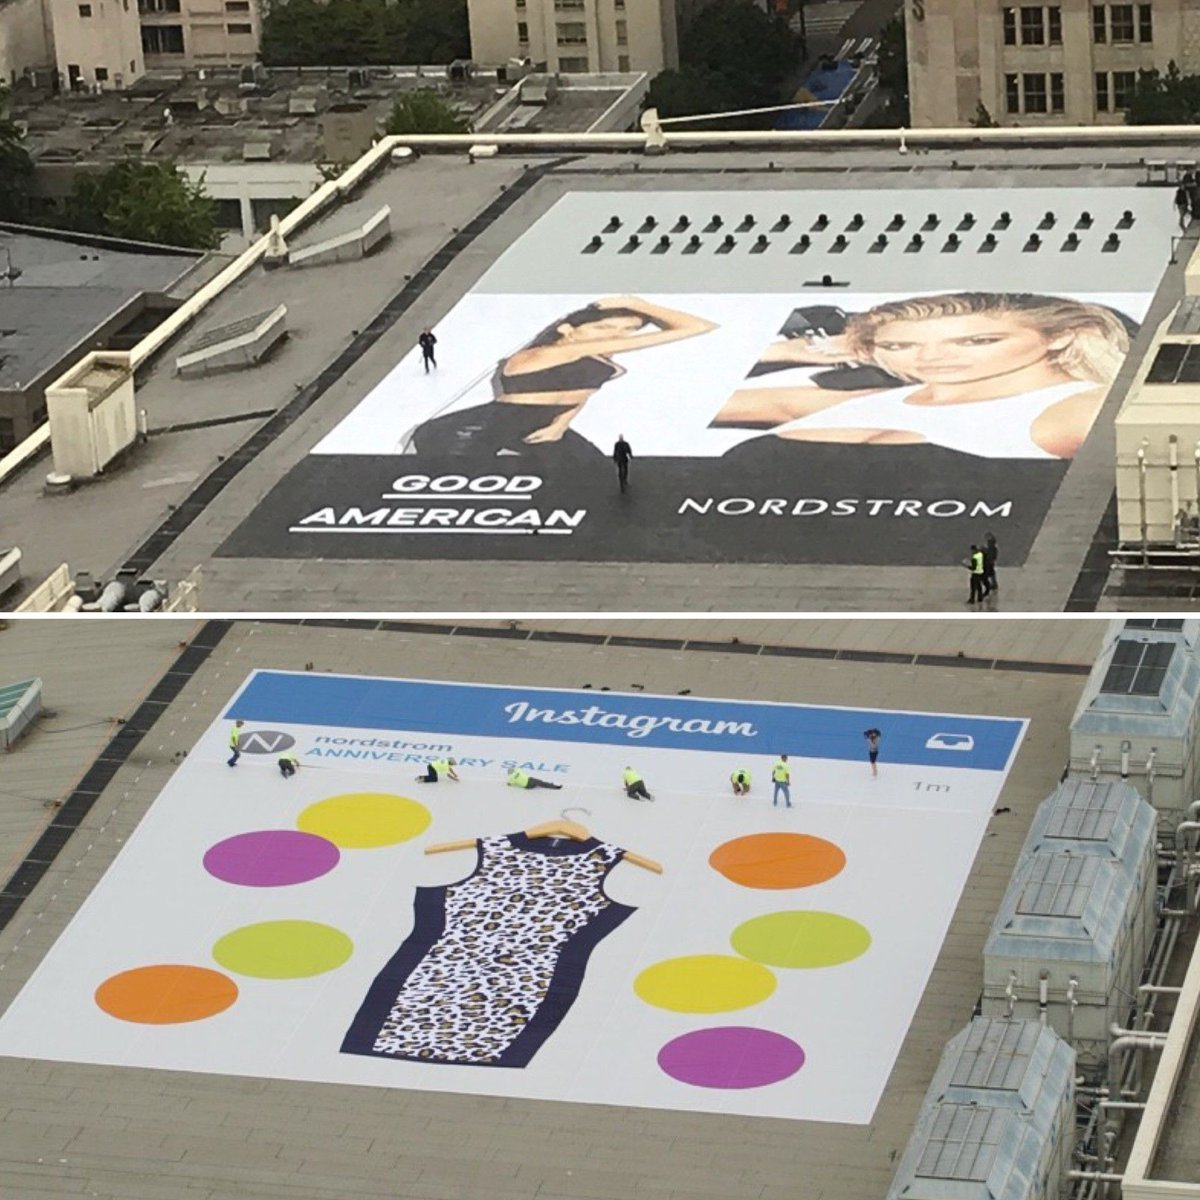 #ThrowbackThursday to 2015&#39;s rooftop Instagram post for Nordstrom&#39;s Anniversary Sale! We had so much fun working with their creative team on another great project for this year. Congrats @Nordstrom on another successful #Nsale <br>http://pic.twitter.com/lsCfzPZEOu